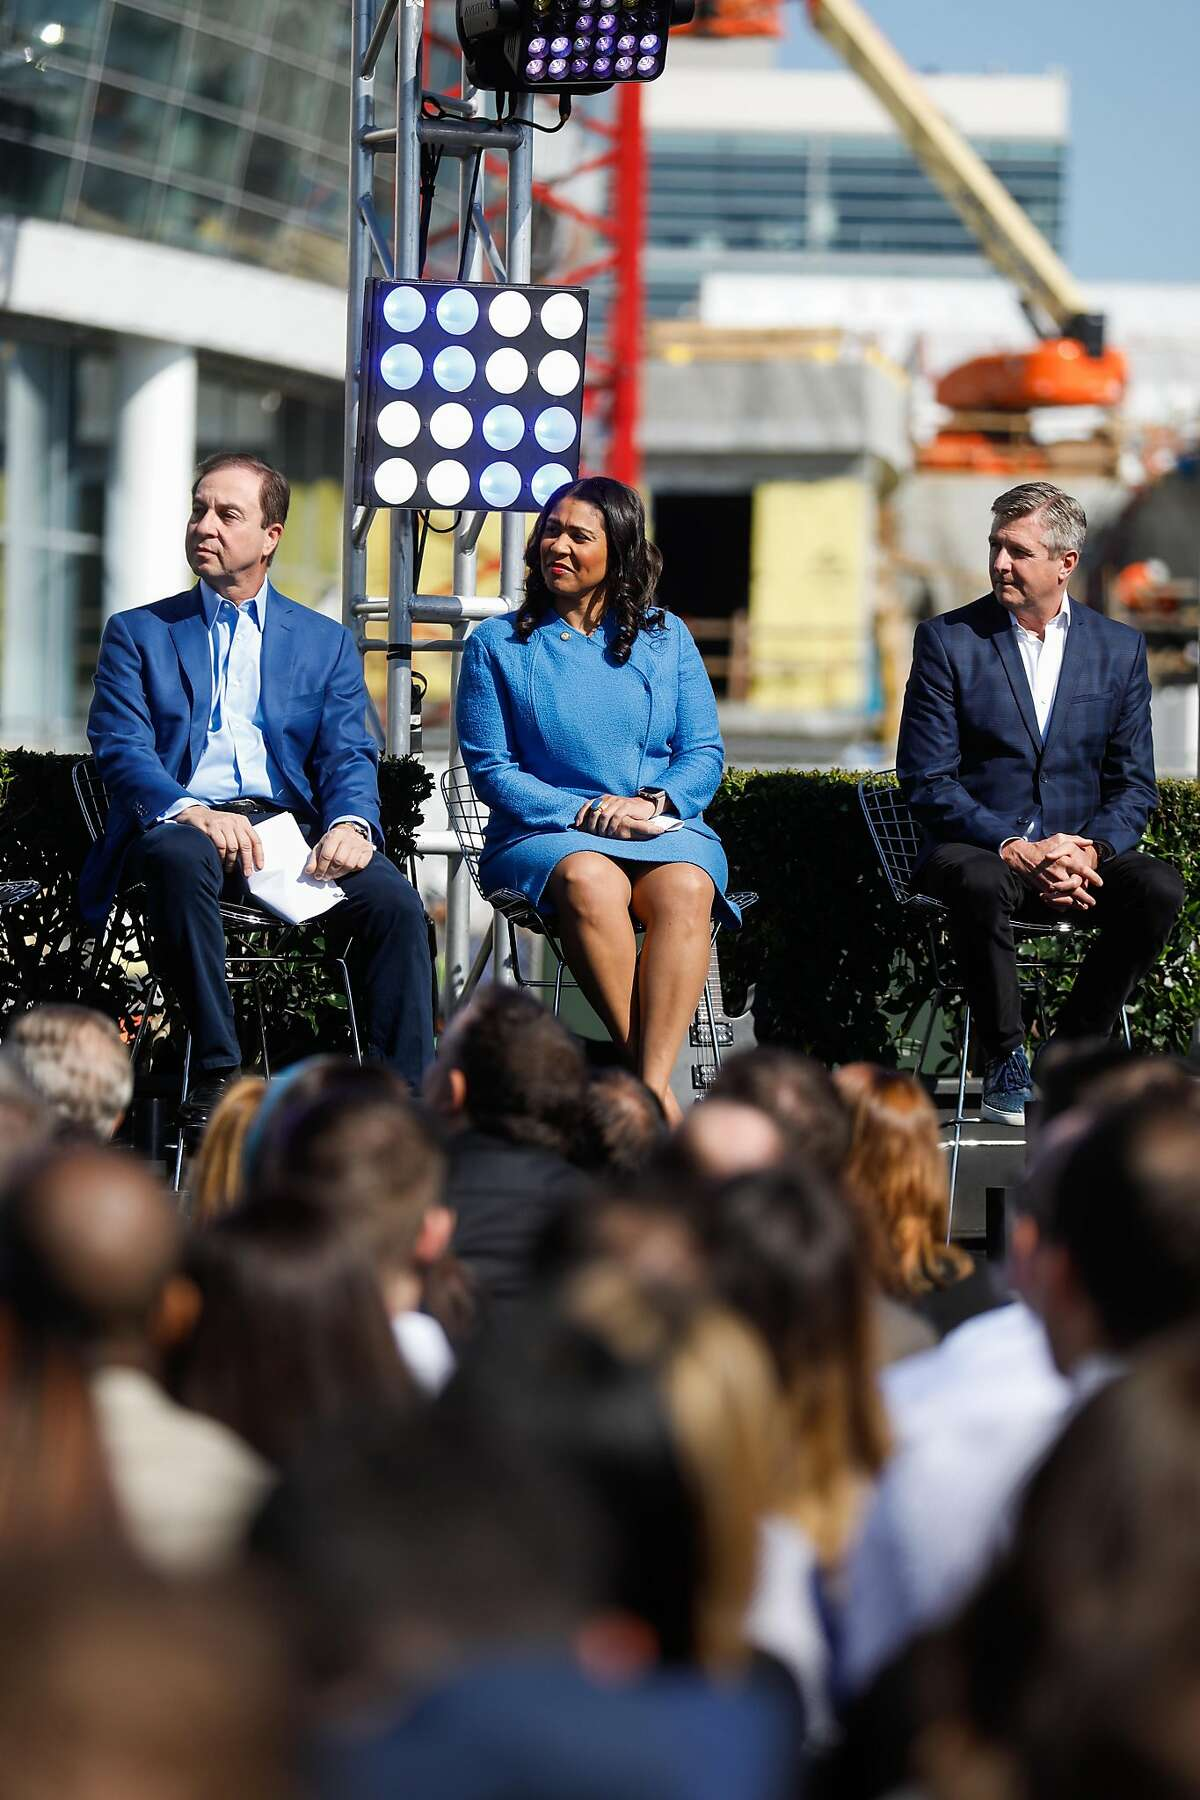 (l-r) Golden State Warriors owner Joe Lacob, Mayor London Breed and Warriors president and COO Rick Welts listen during a press conference which announced Metallica as the first performer at the Chase Center in San Francisco, Calif., on Monday March 18, 2019.